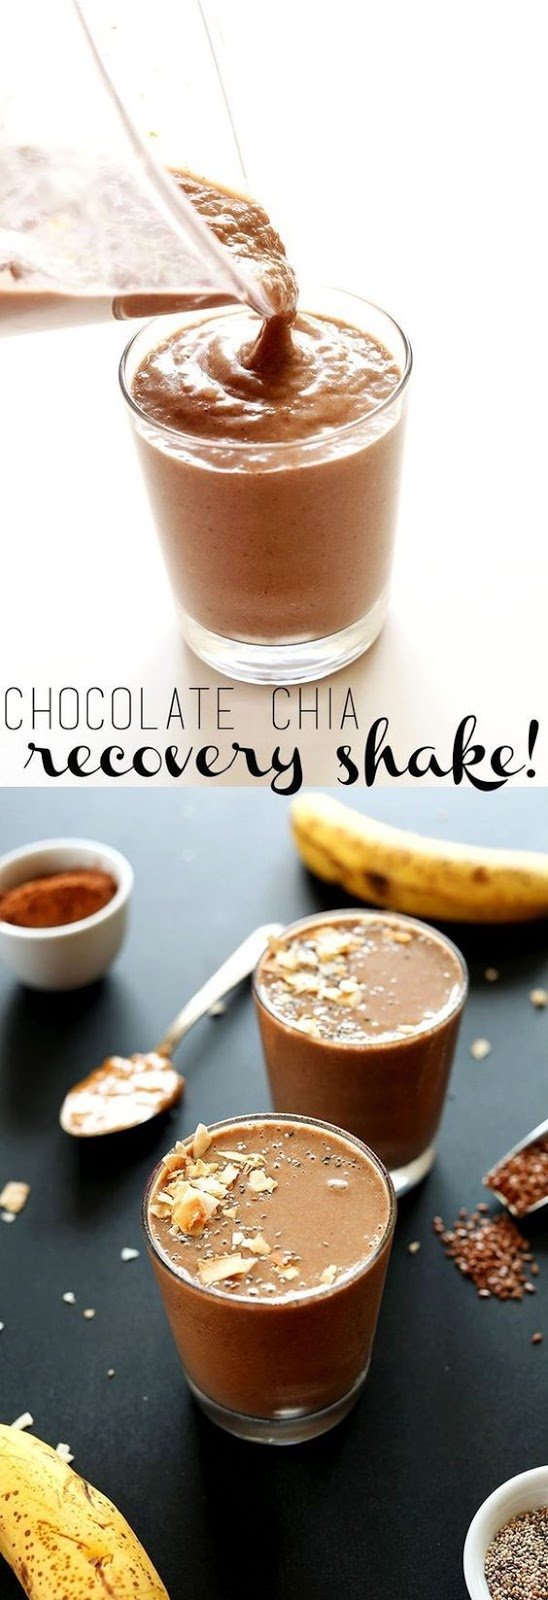 HEALTHY CHOCOLATE CHIA PROTEIN SHAKE